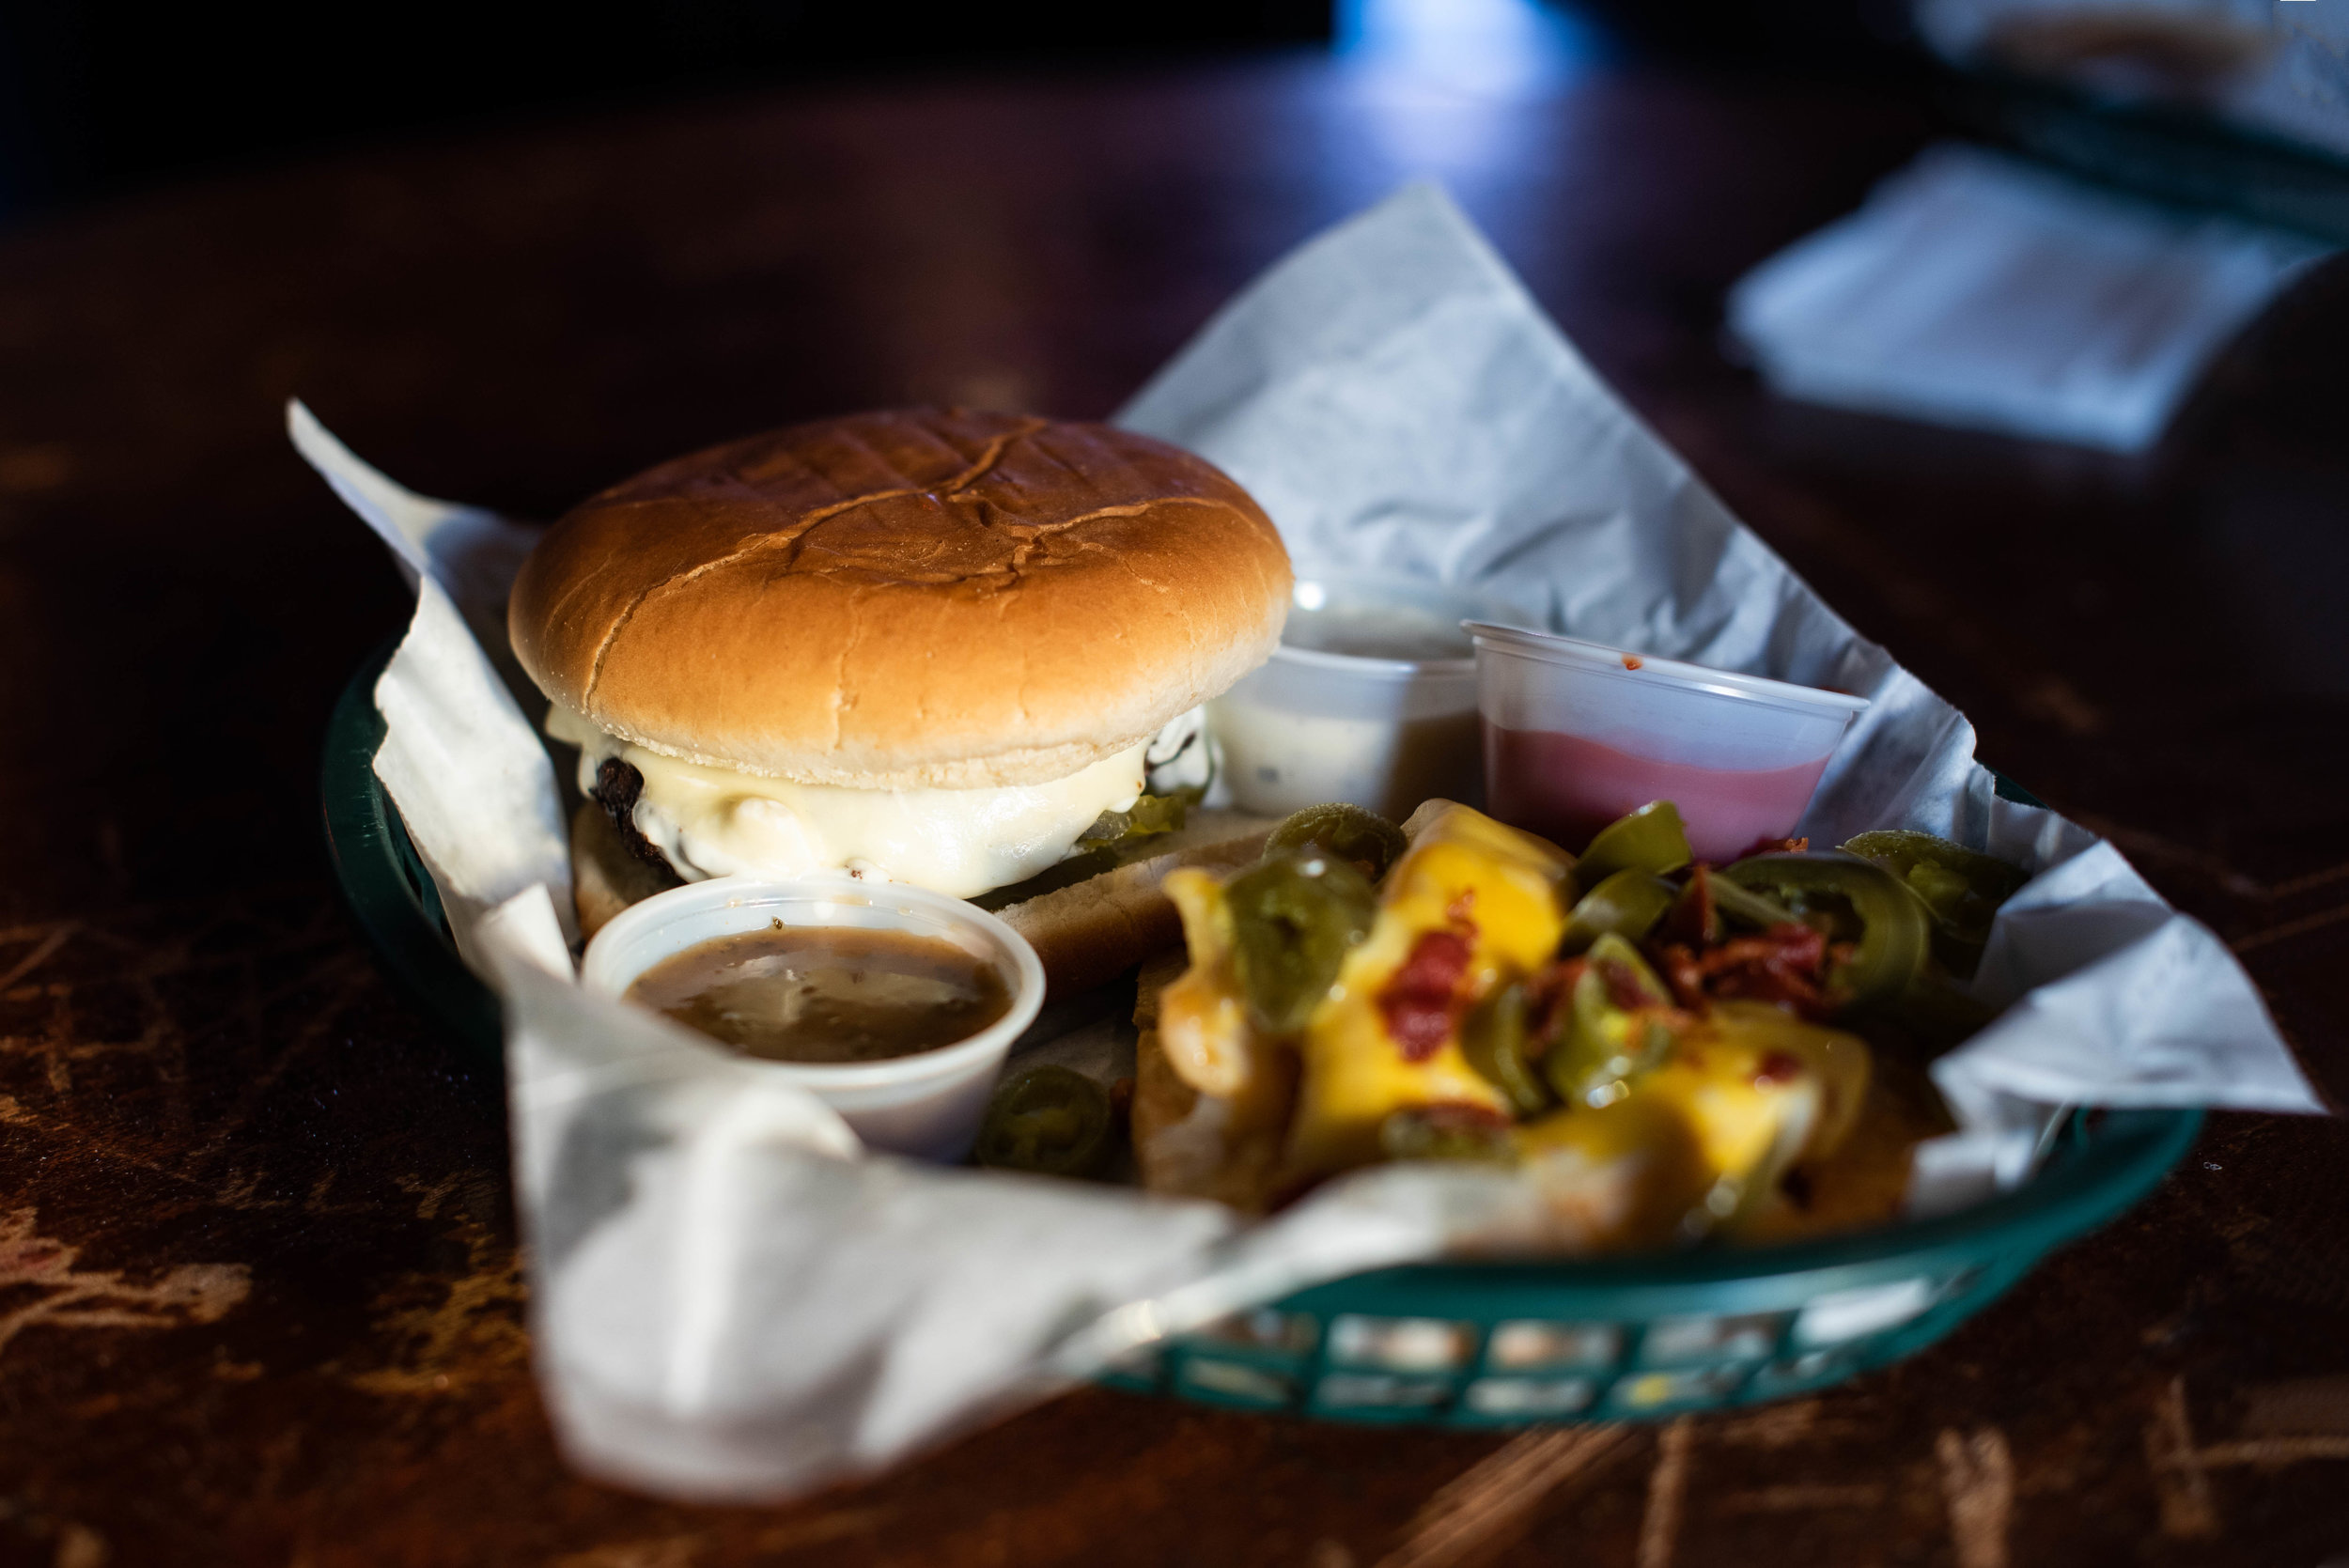 The Blarney Stone burger